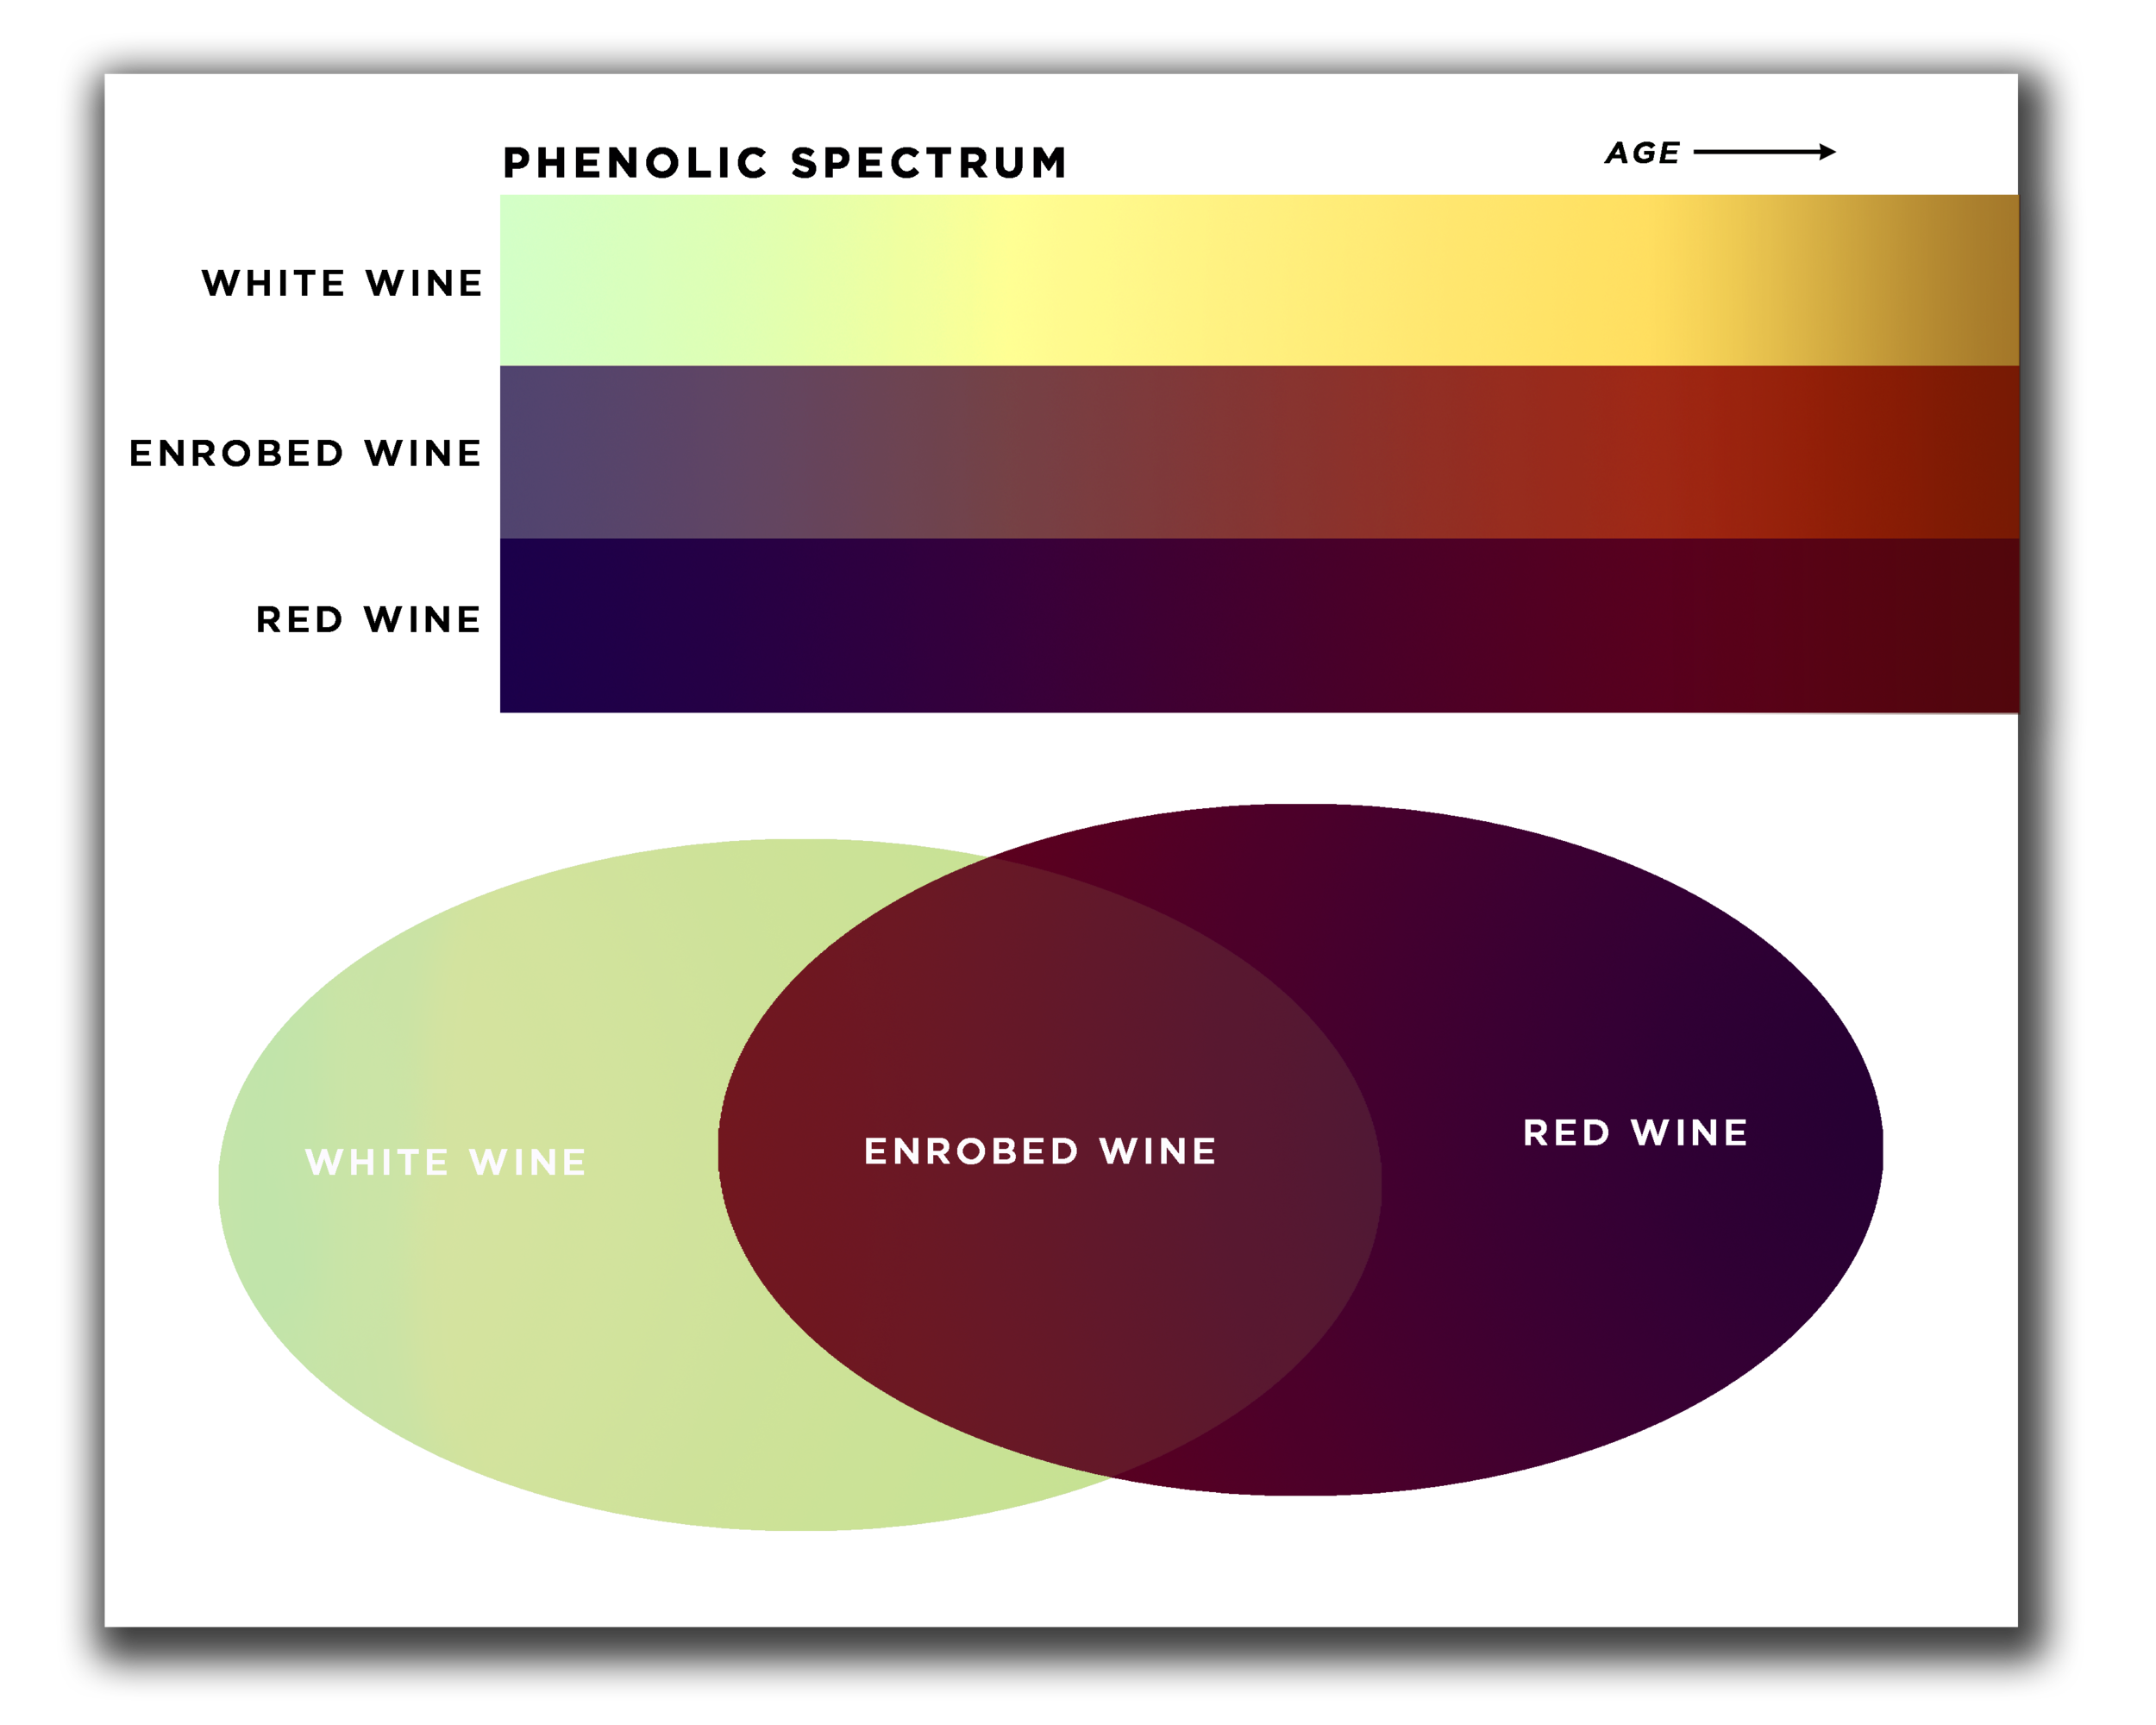 The resulting colors and flavors of Enrobed Wine can expand the palette available to winemakers!